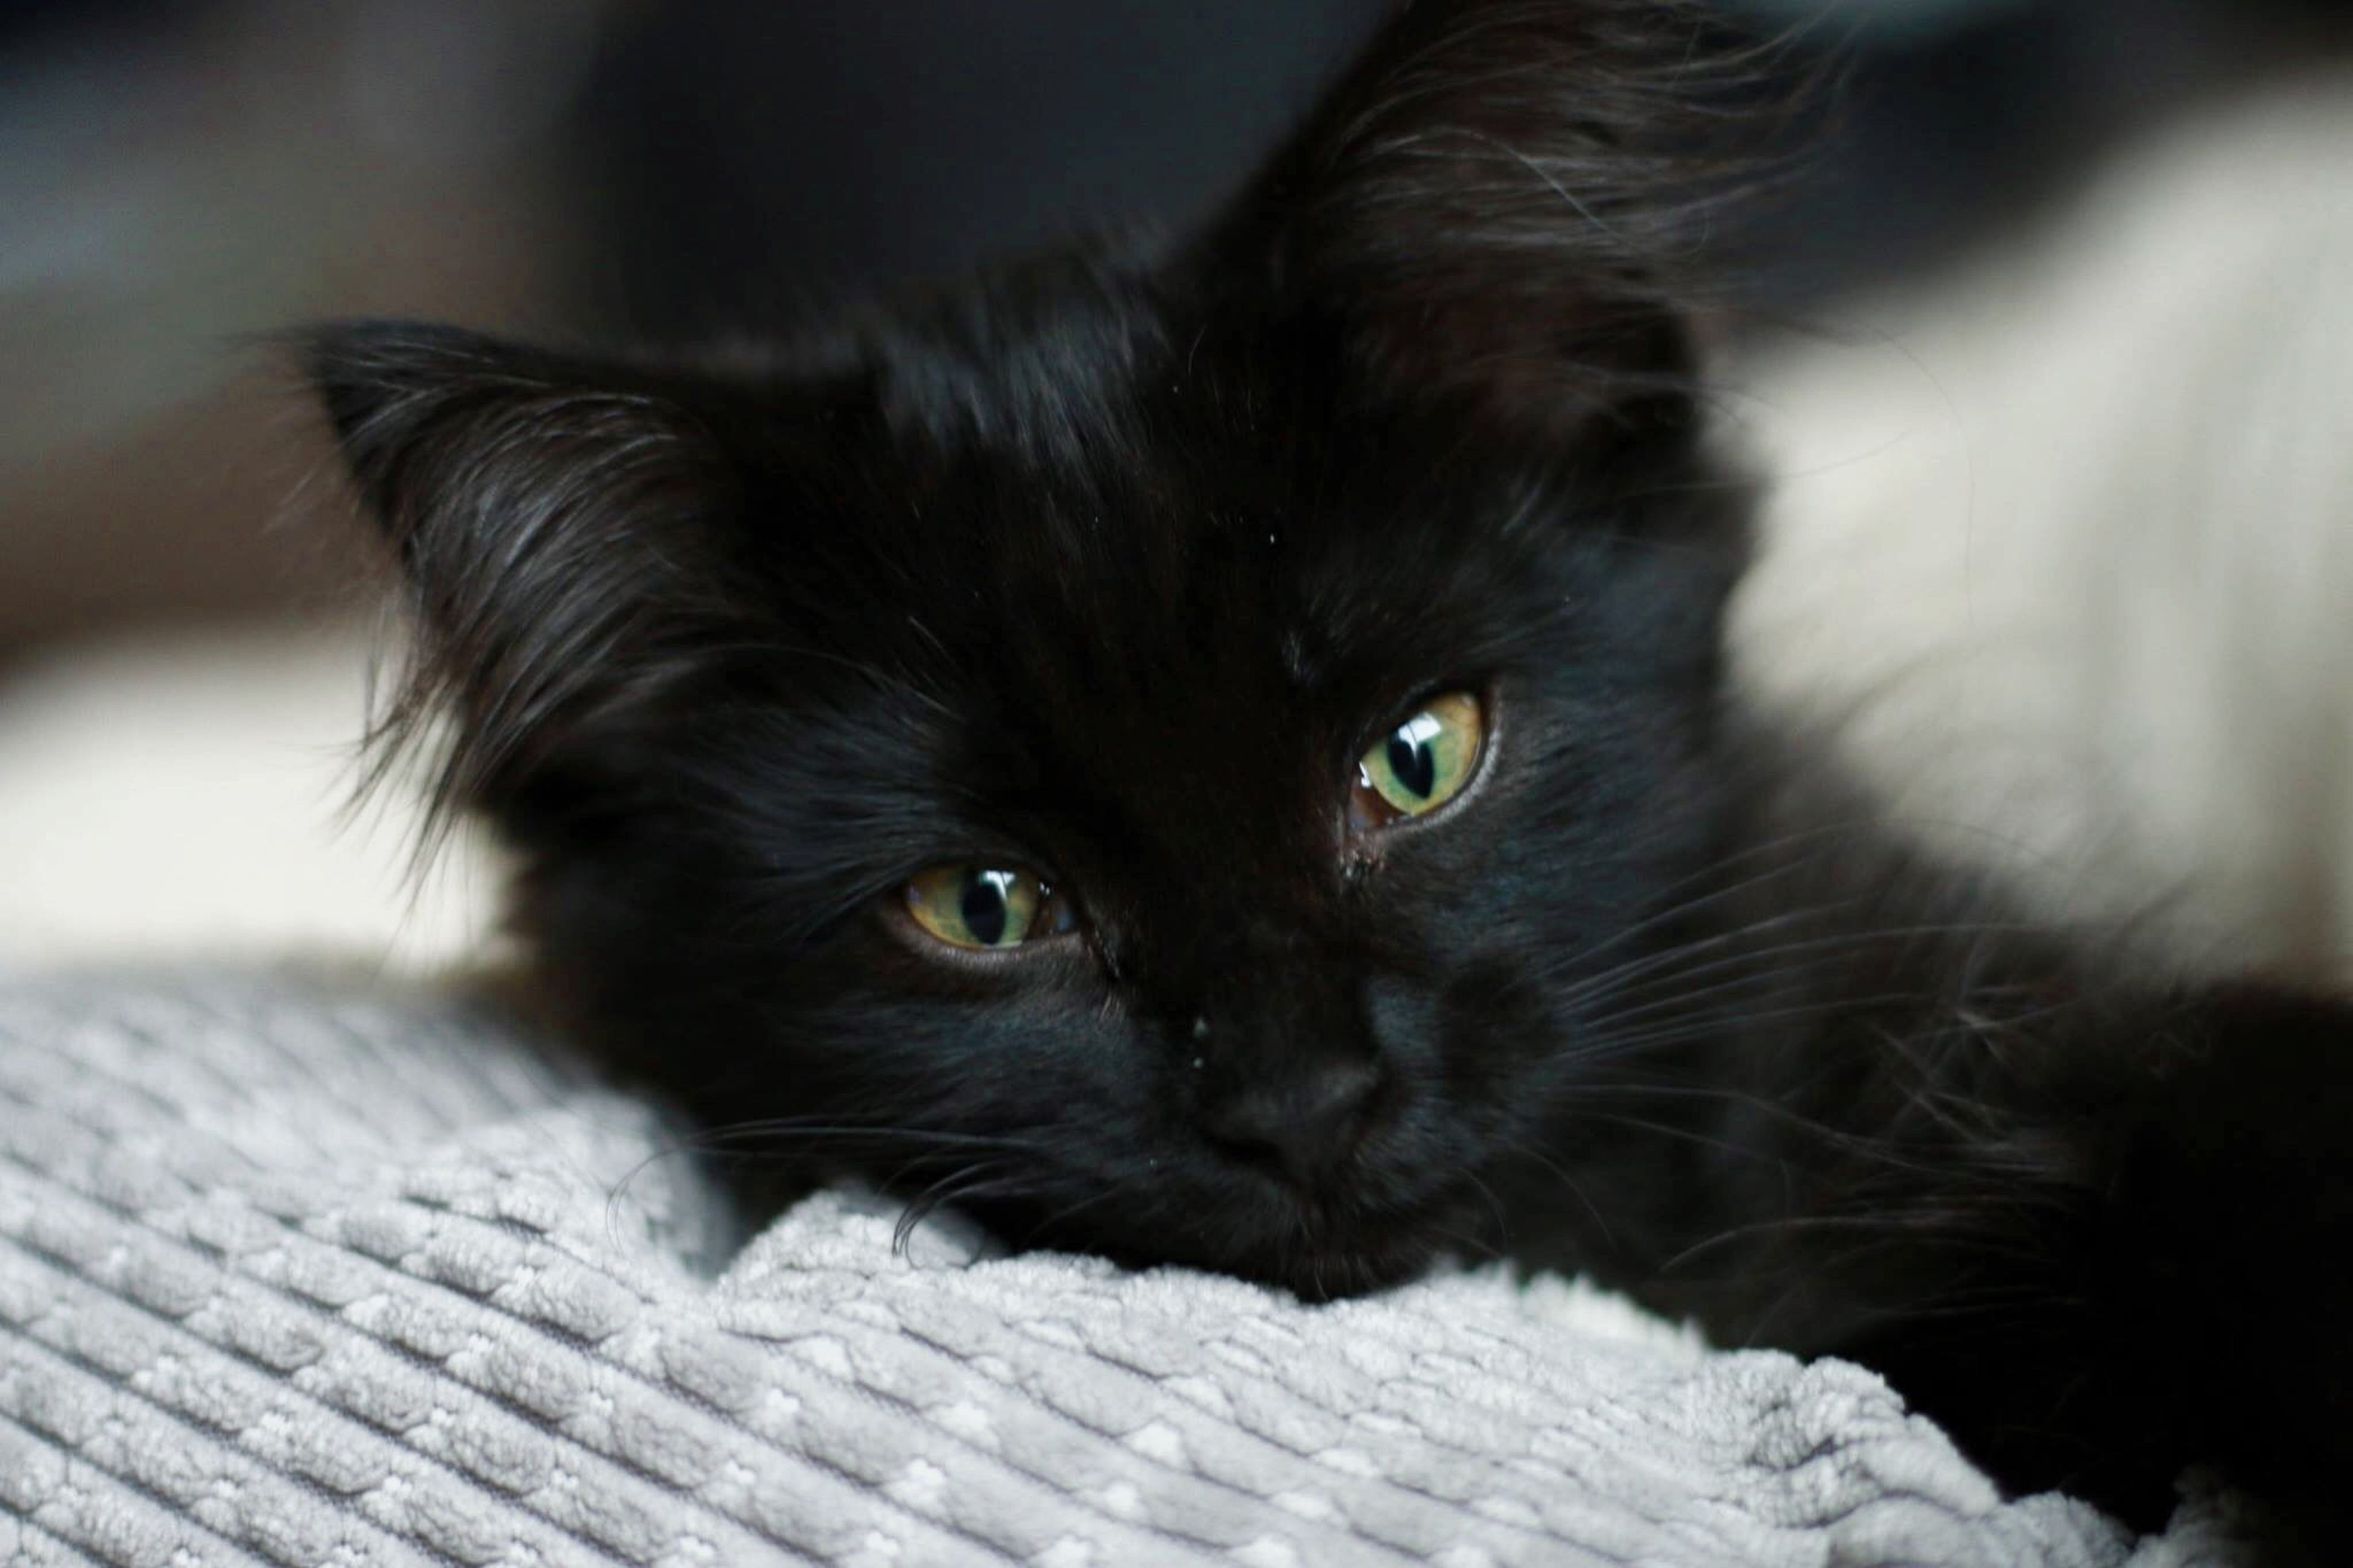 pets, one animal, domestic animals, animal themes, domestic cat, mammal, indoors, portrait, looking at camera, cat, whisker, close-up, feline, focus on foreground, relaxation, black color, animal head, selective focus, home interior, lying down